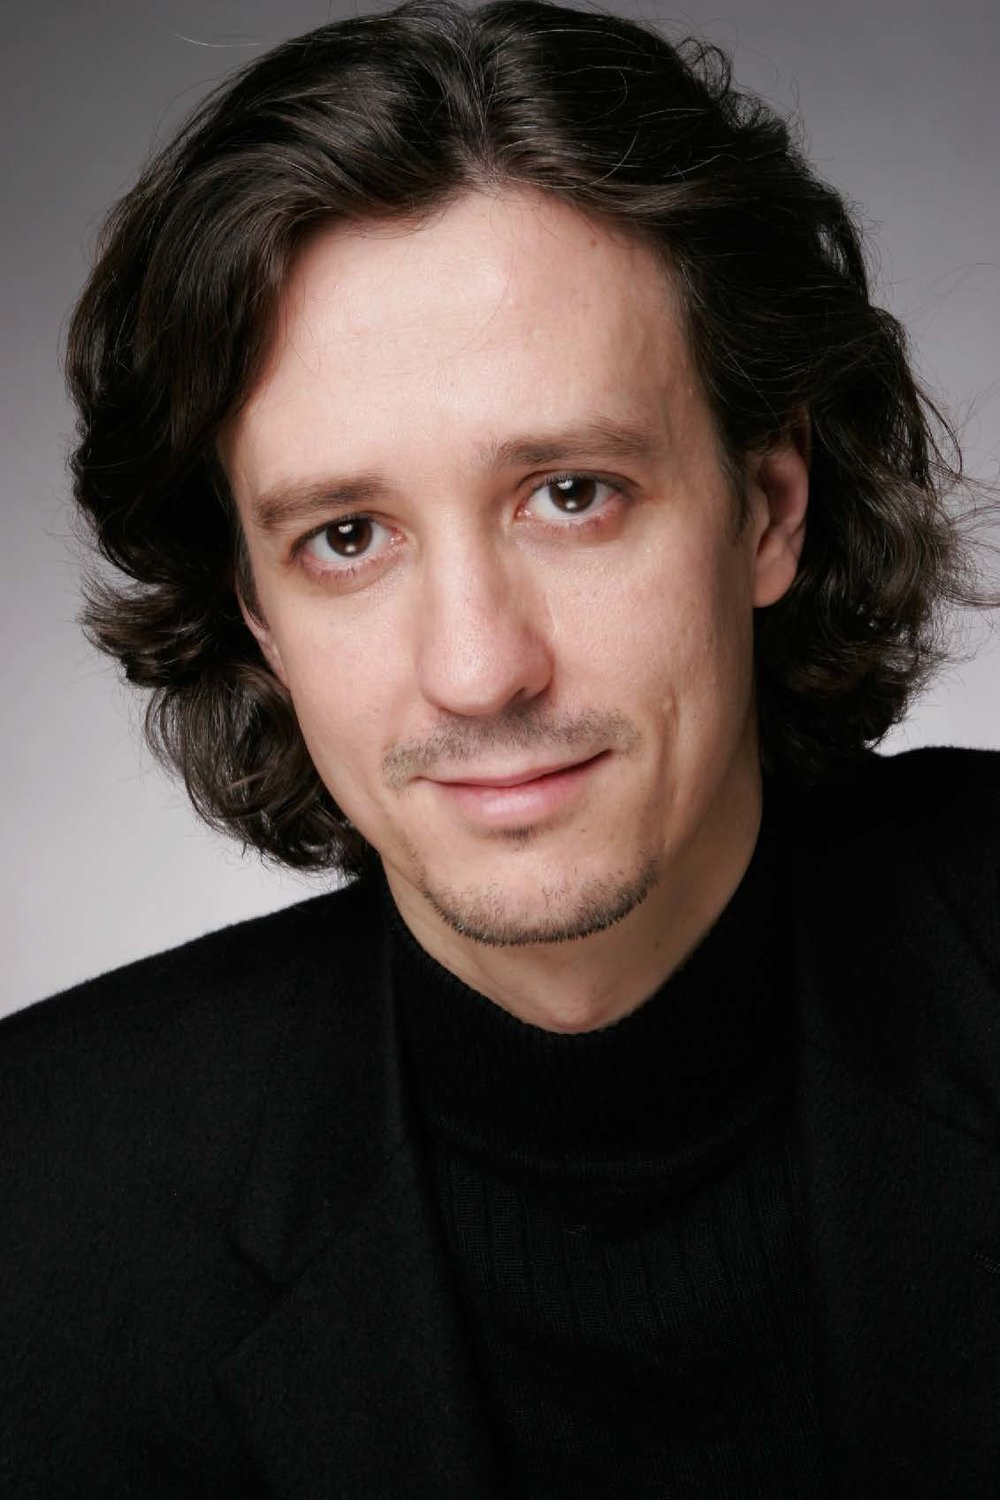 Jorge headshot formal from his web site.jpg